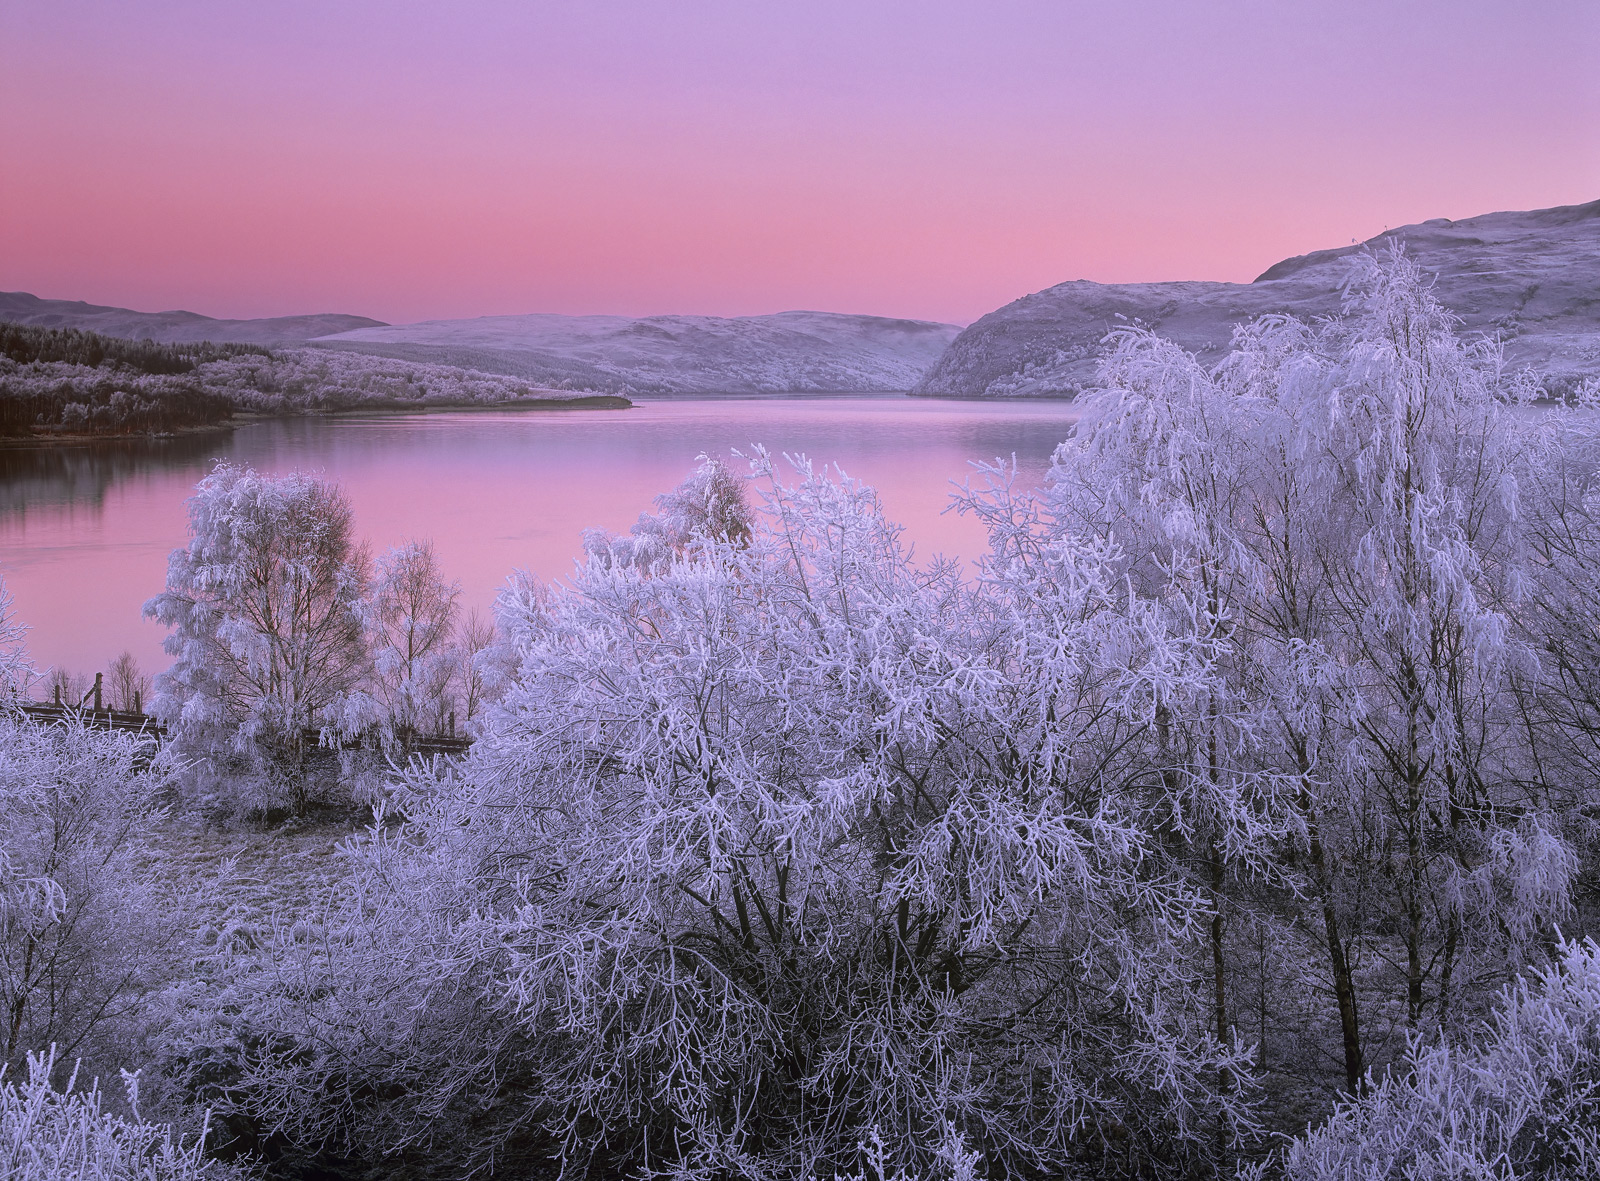 It was so bitterly cold during a winter snap in January that the hoar frost that had settled in the area never once thawed and...